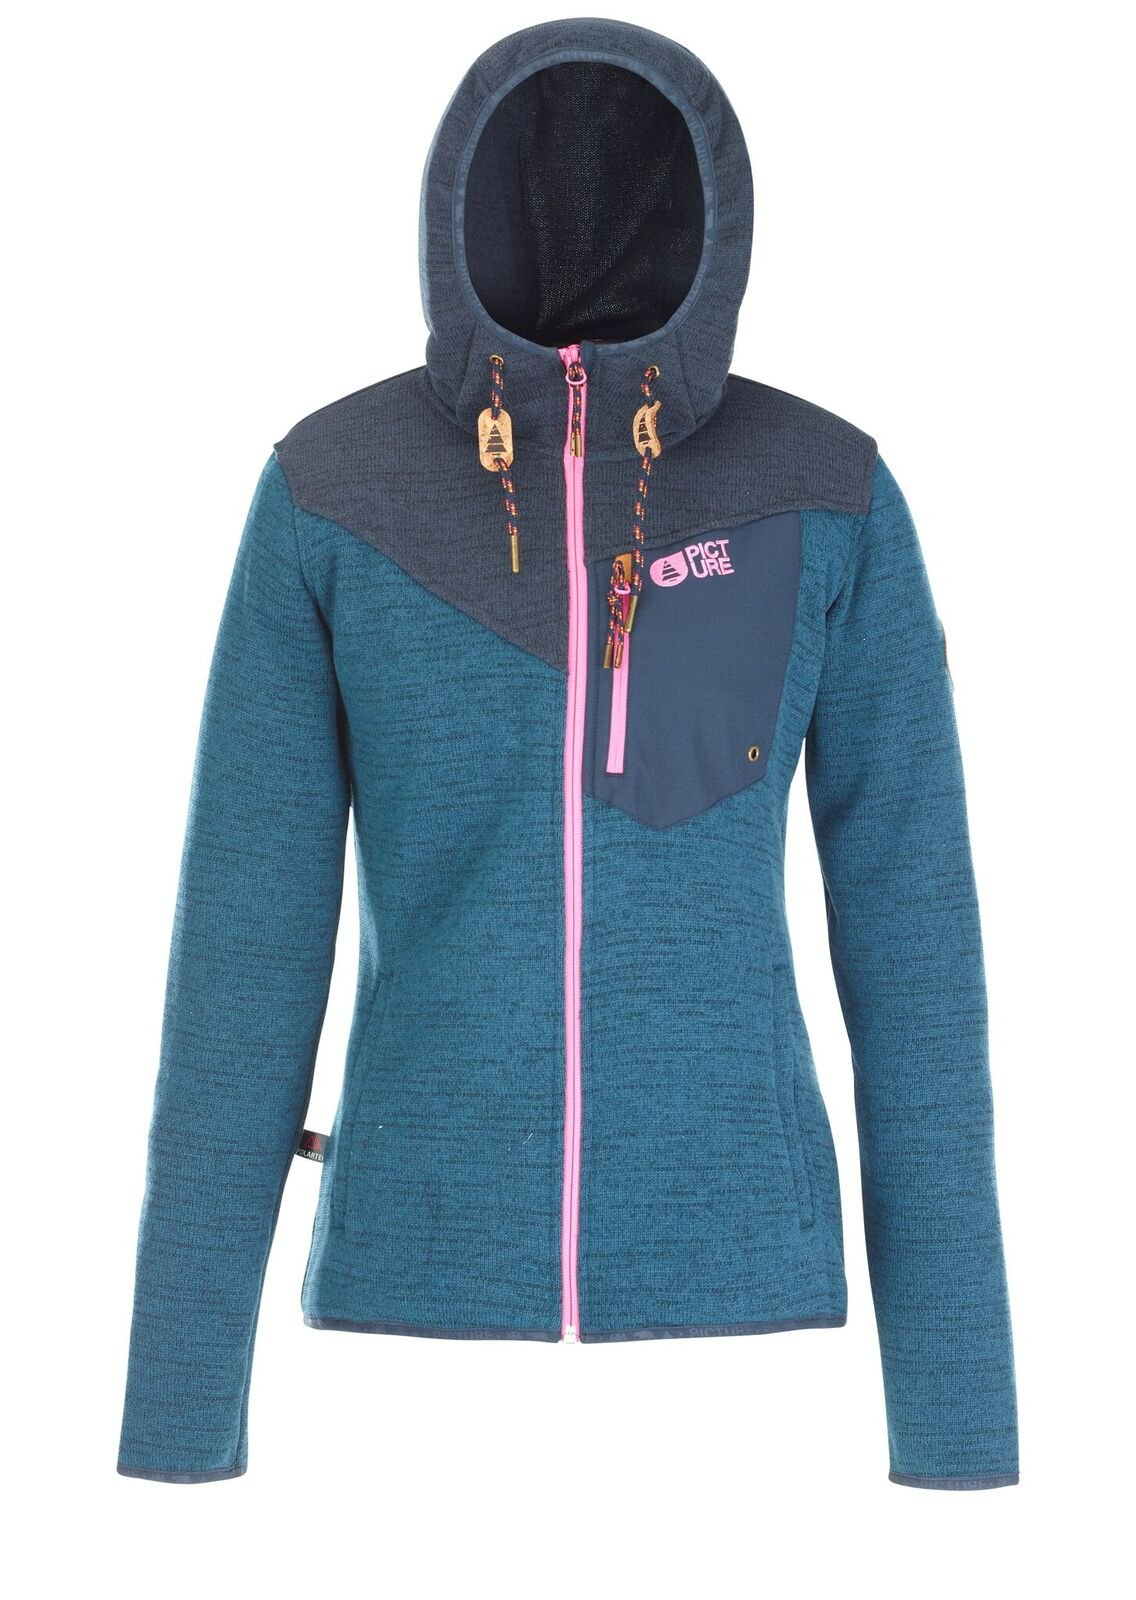 Picture 2018 Woman's Moder Jacket